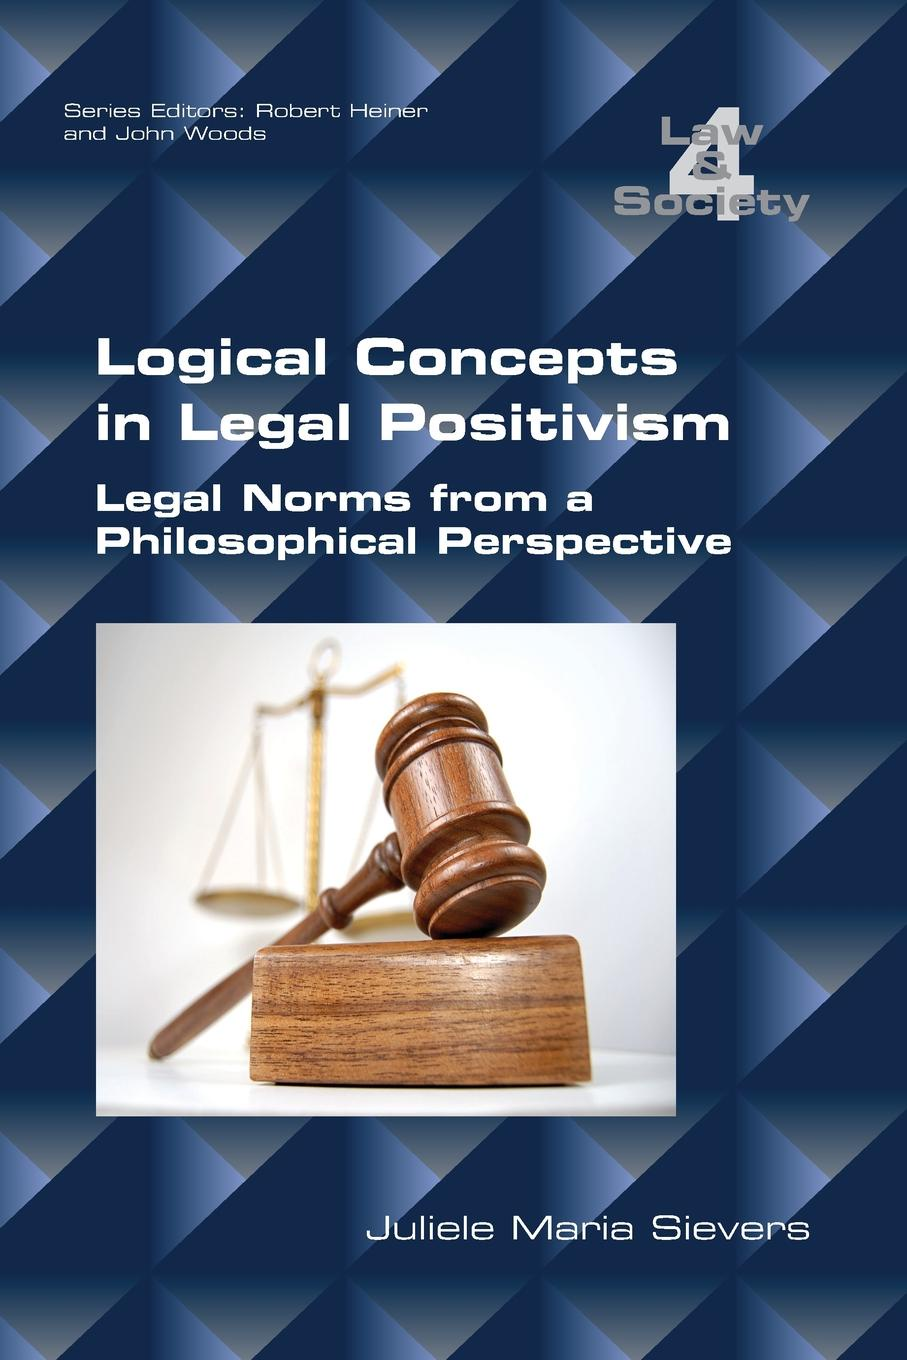 Juliele Maria Sievers Logical Concepts in Legal Positivism. Legal Norms from a Philosophical Perspective aaron meskin the art of comics a philosophical approach